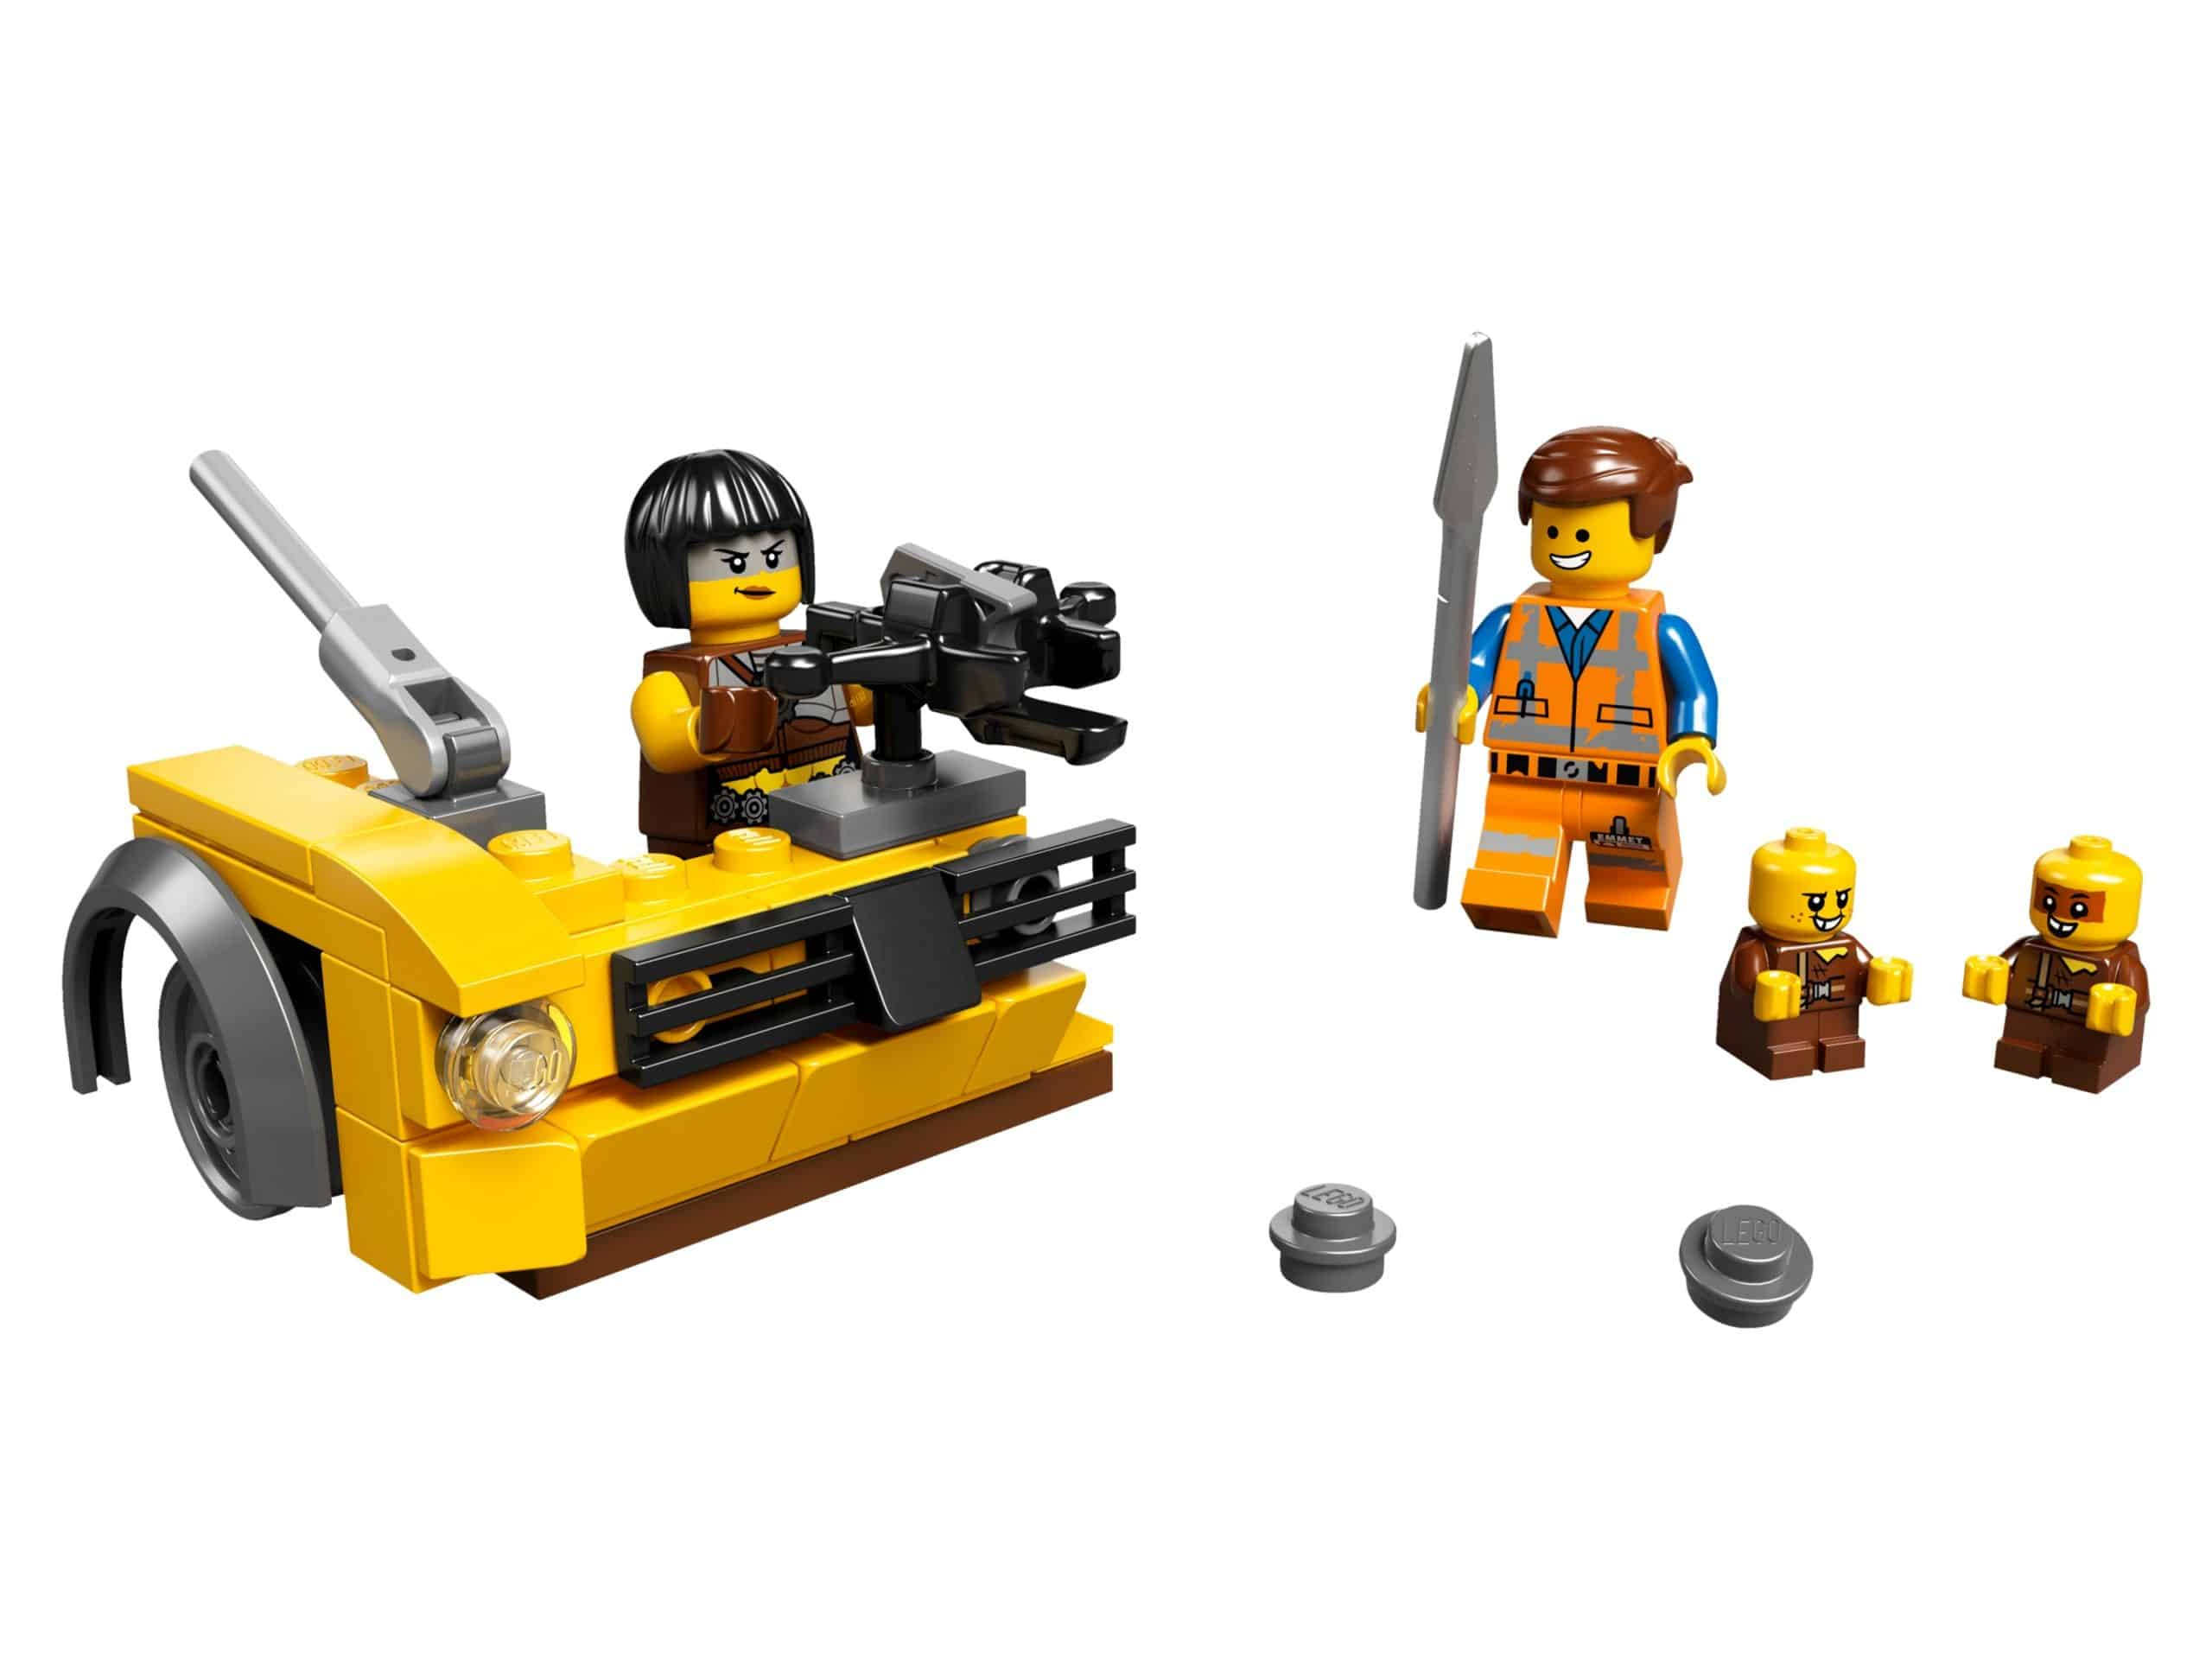 lego dlf2 accessoireset 2019 853865 scaled